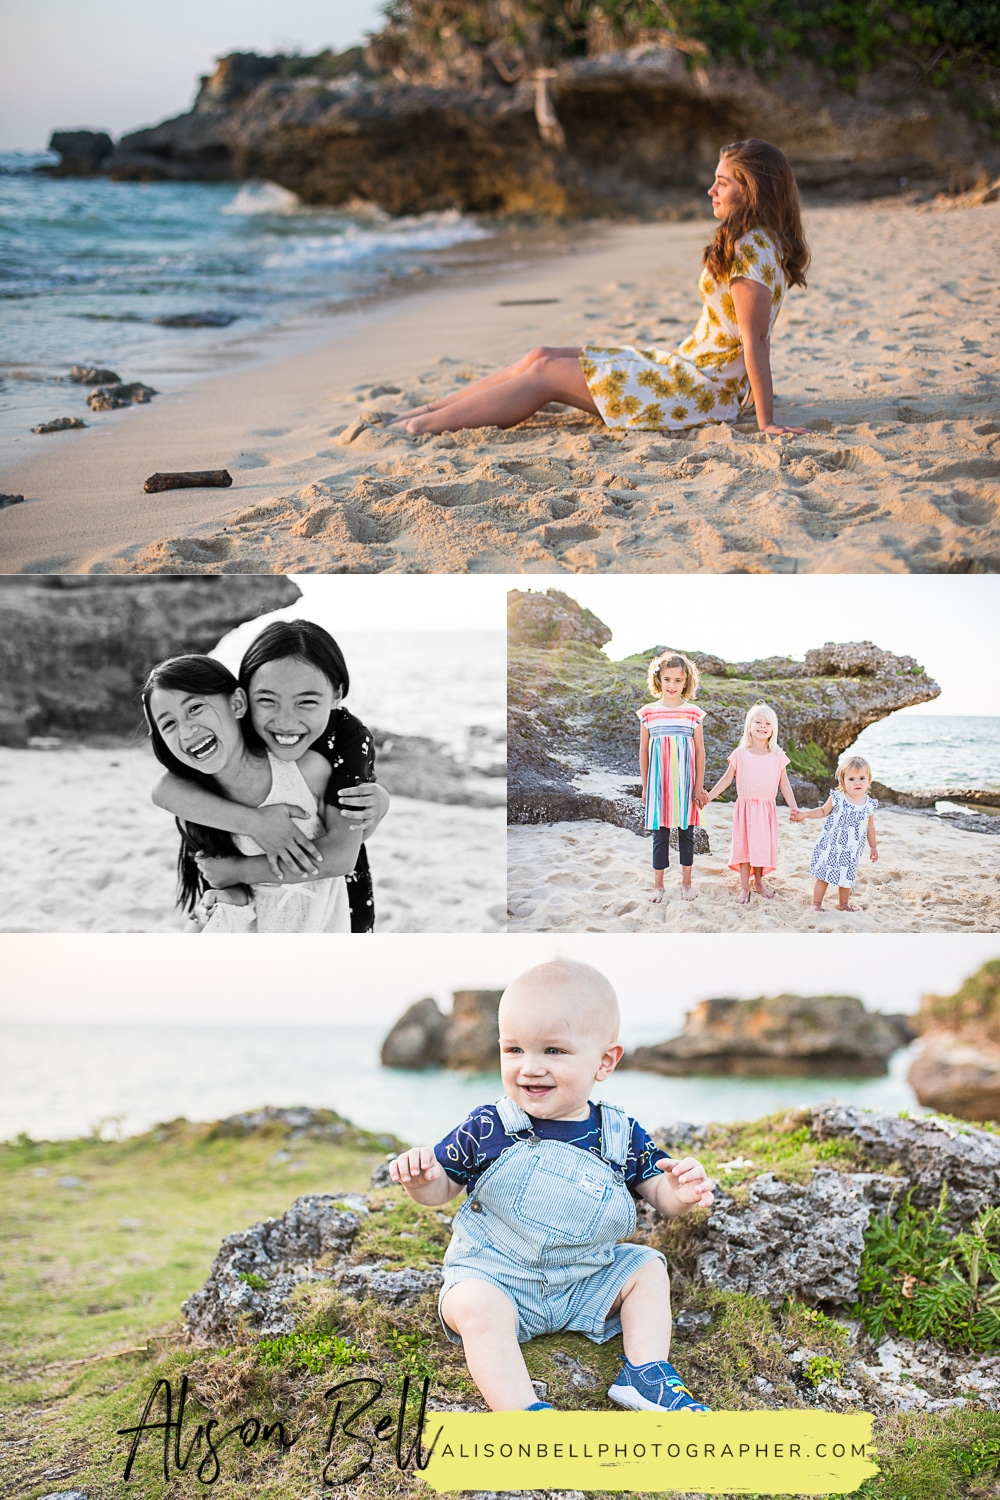 Half Priced Beach Mini sessions by Alison Bell, Photographer. Family, baby, toddler, kids and high school senior portraits.